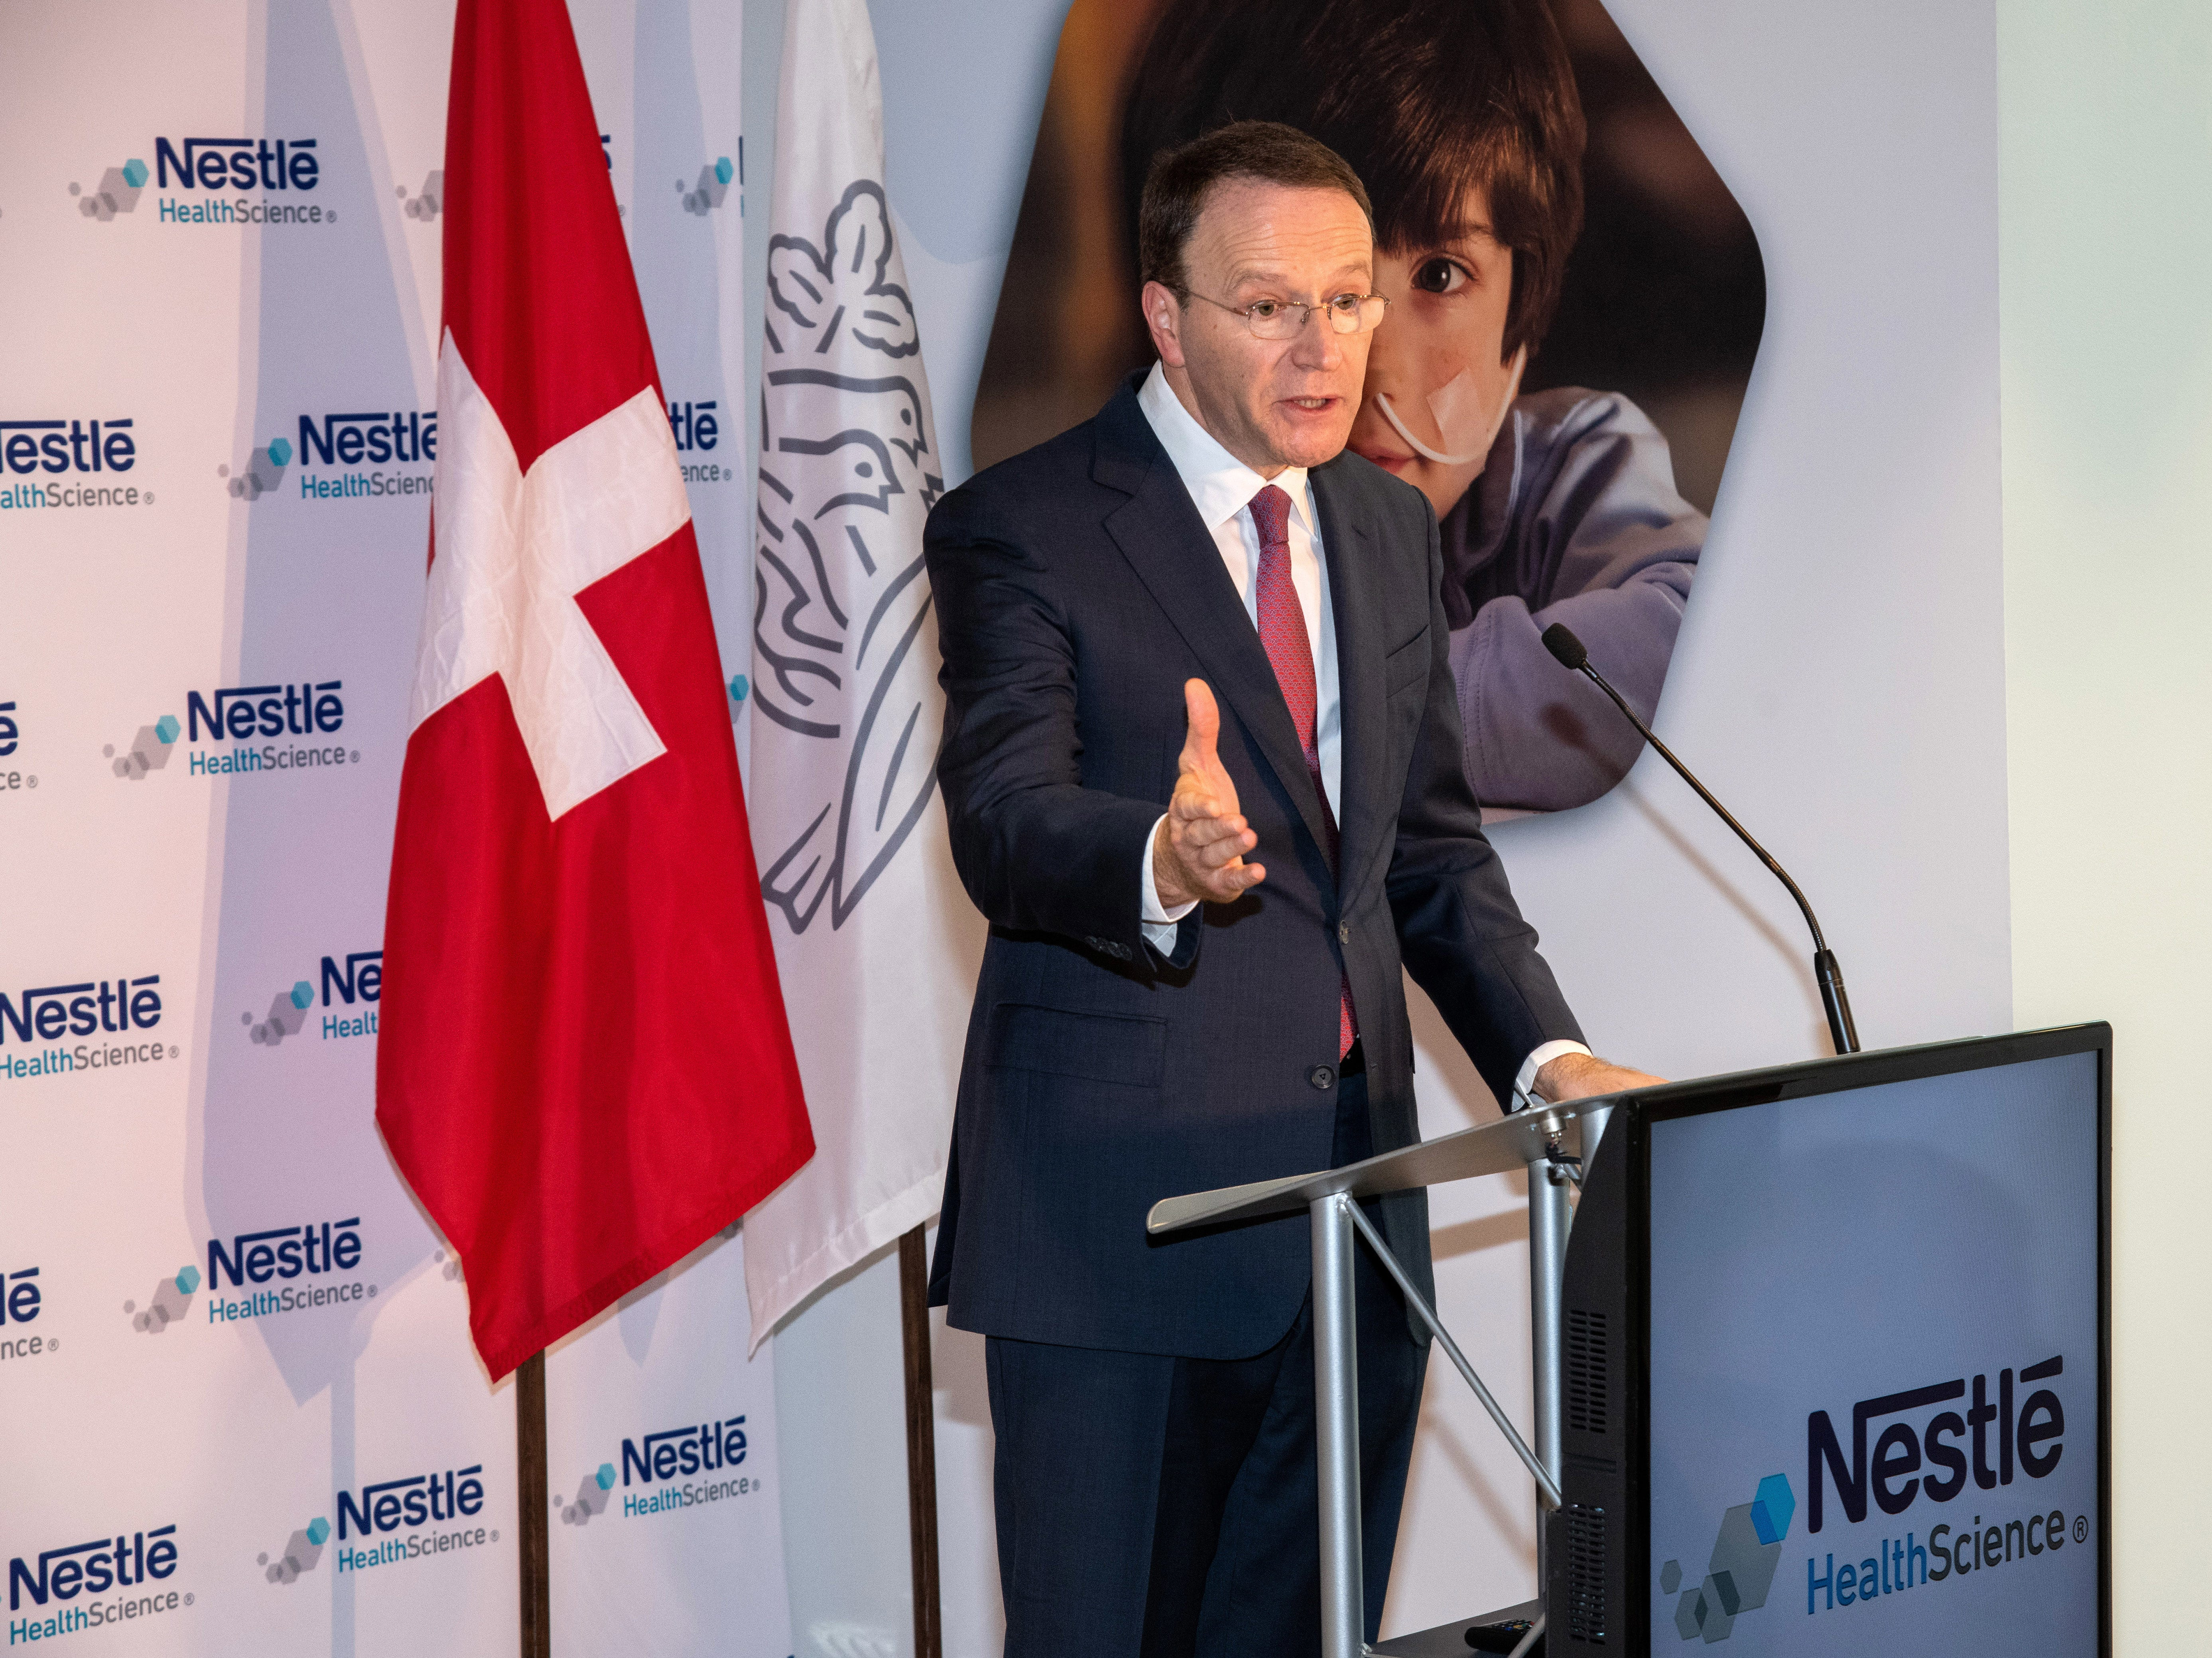 Mark Schneider, CEO Nestlé S.A., addresses guests at the inauguration of Nestlé Health Science's Product Technology Center on Monday, Dec. 3, 2018 in Bridgewater, N.J. (Charles Sykes/AP Images for Nestlé)